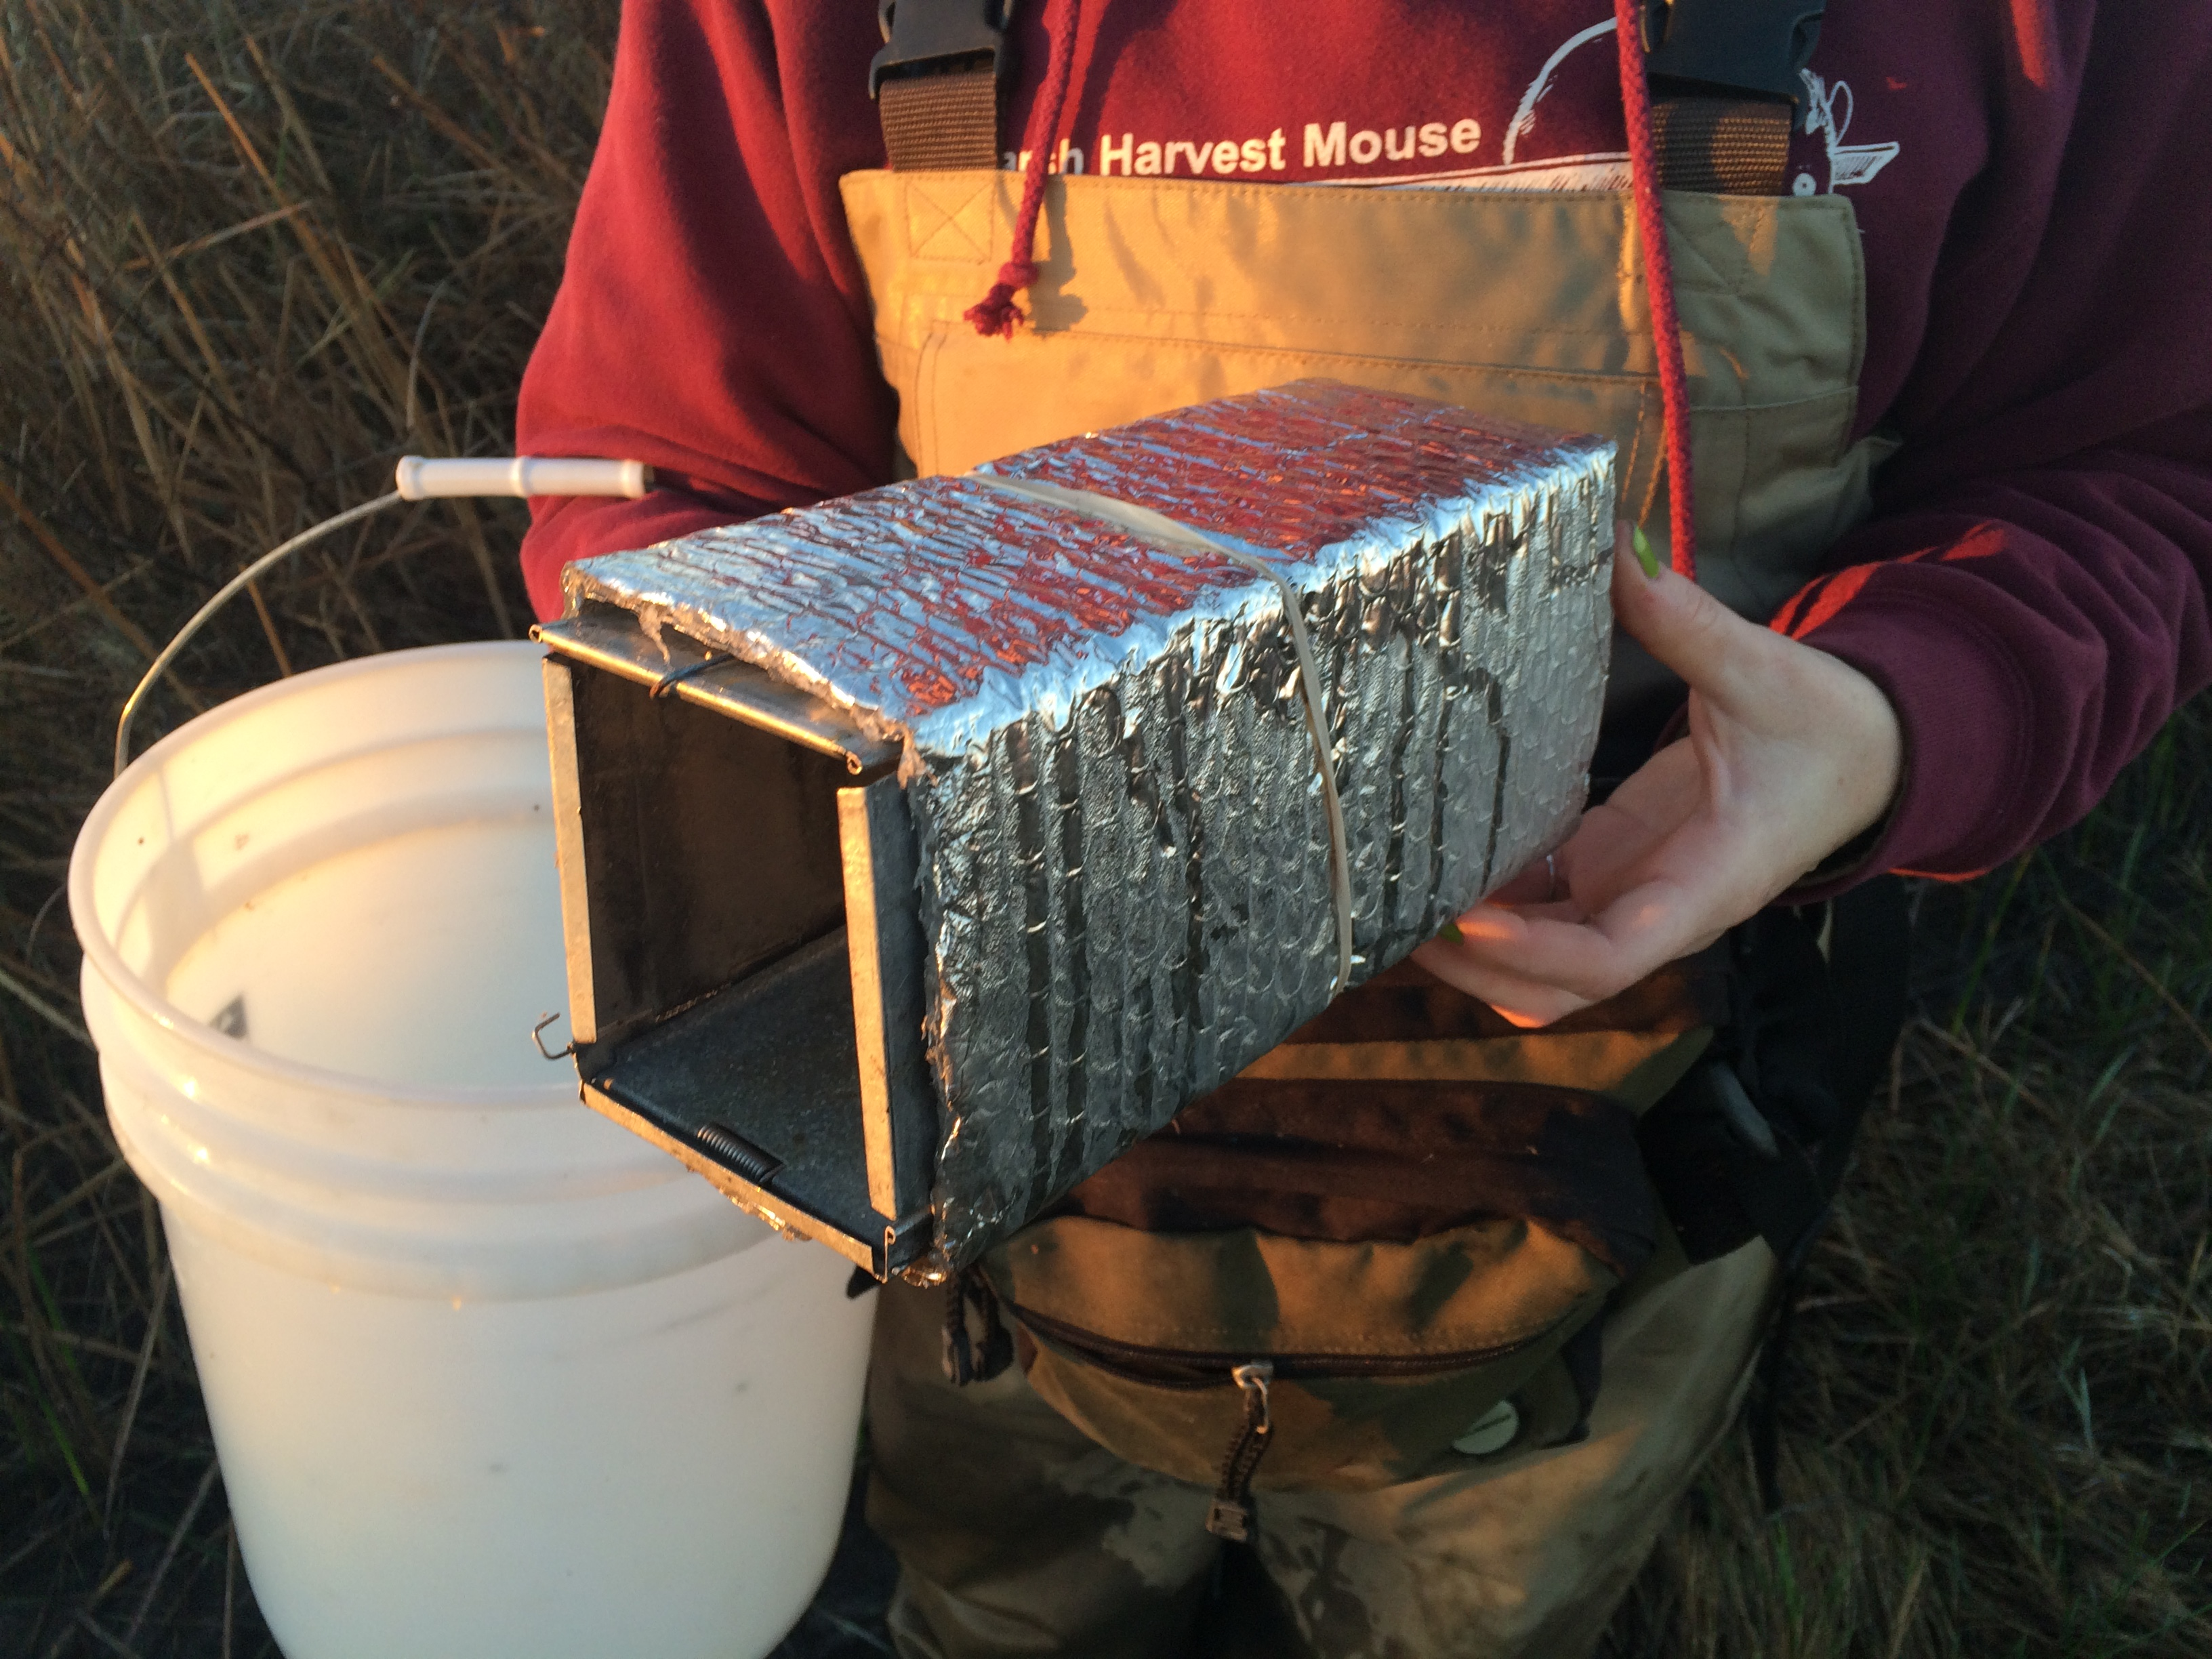 Special Box Used To Attract The Salt Marsh Harvest Mouse.